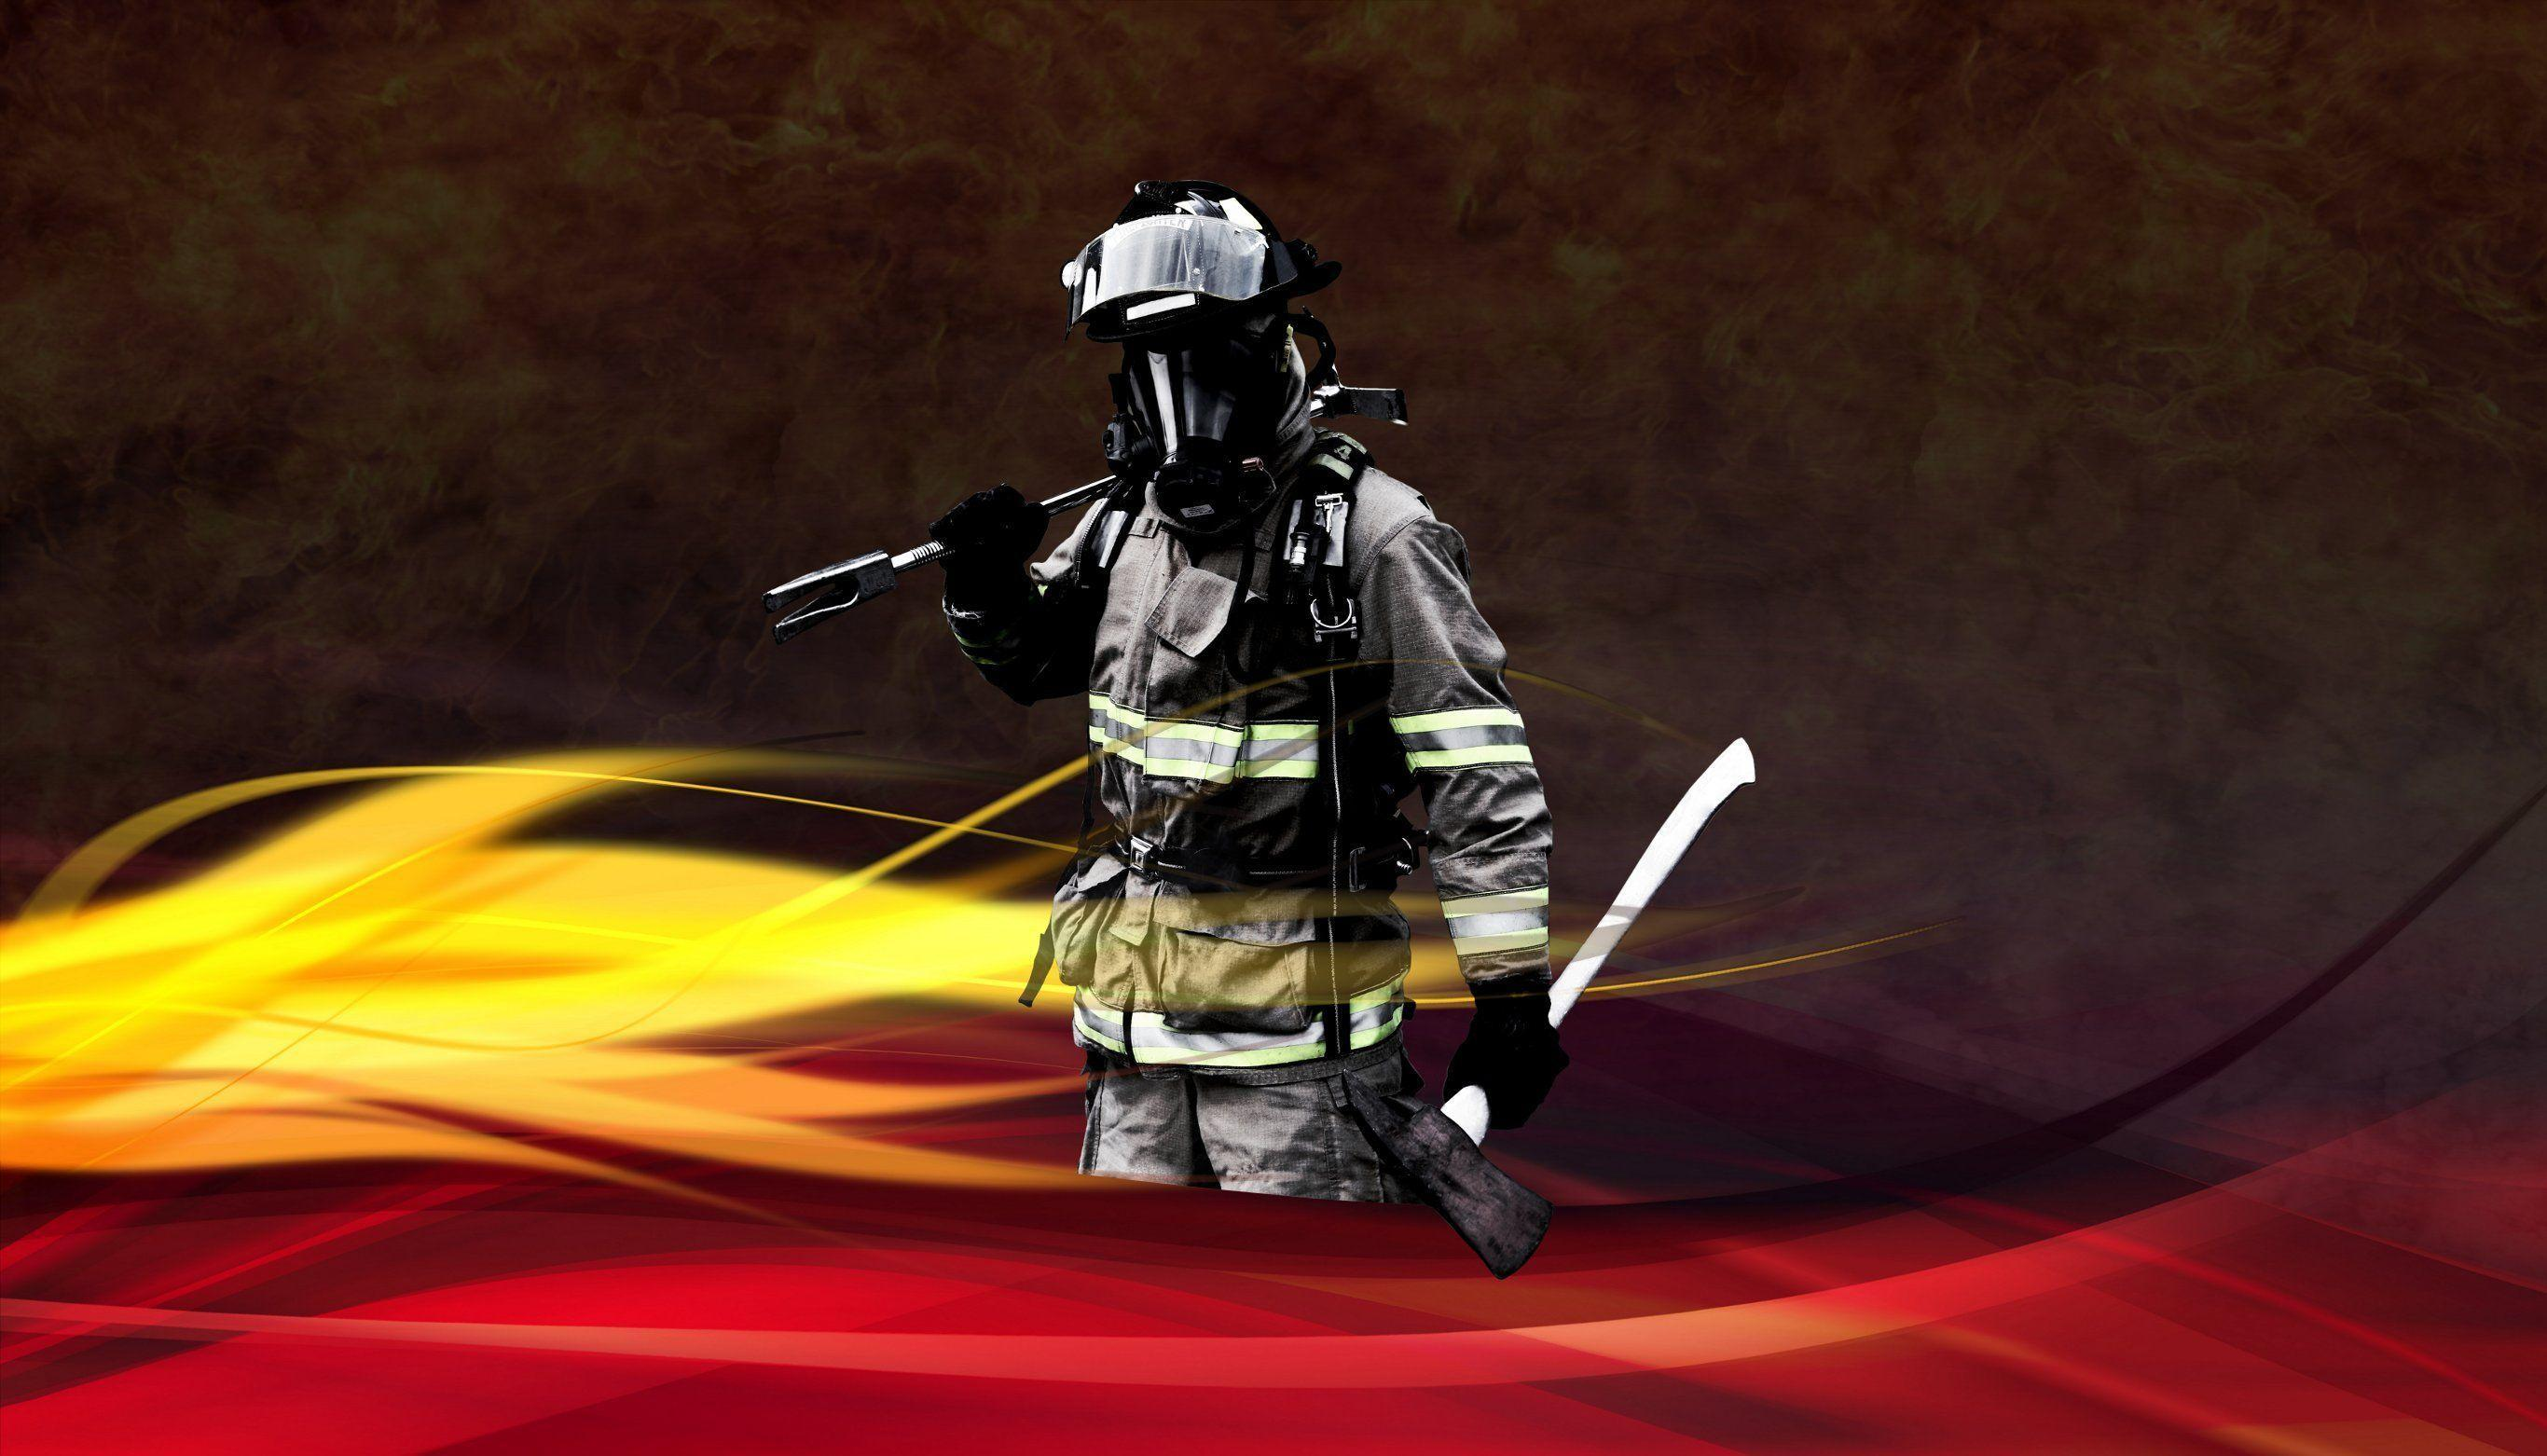 Firefighter Wallpaper Background Navy Seal Wallpapers